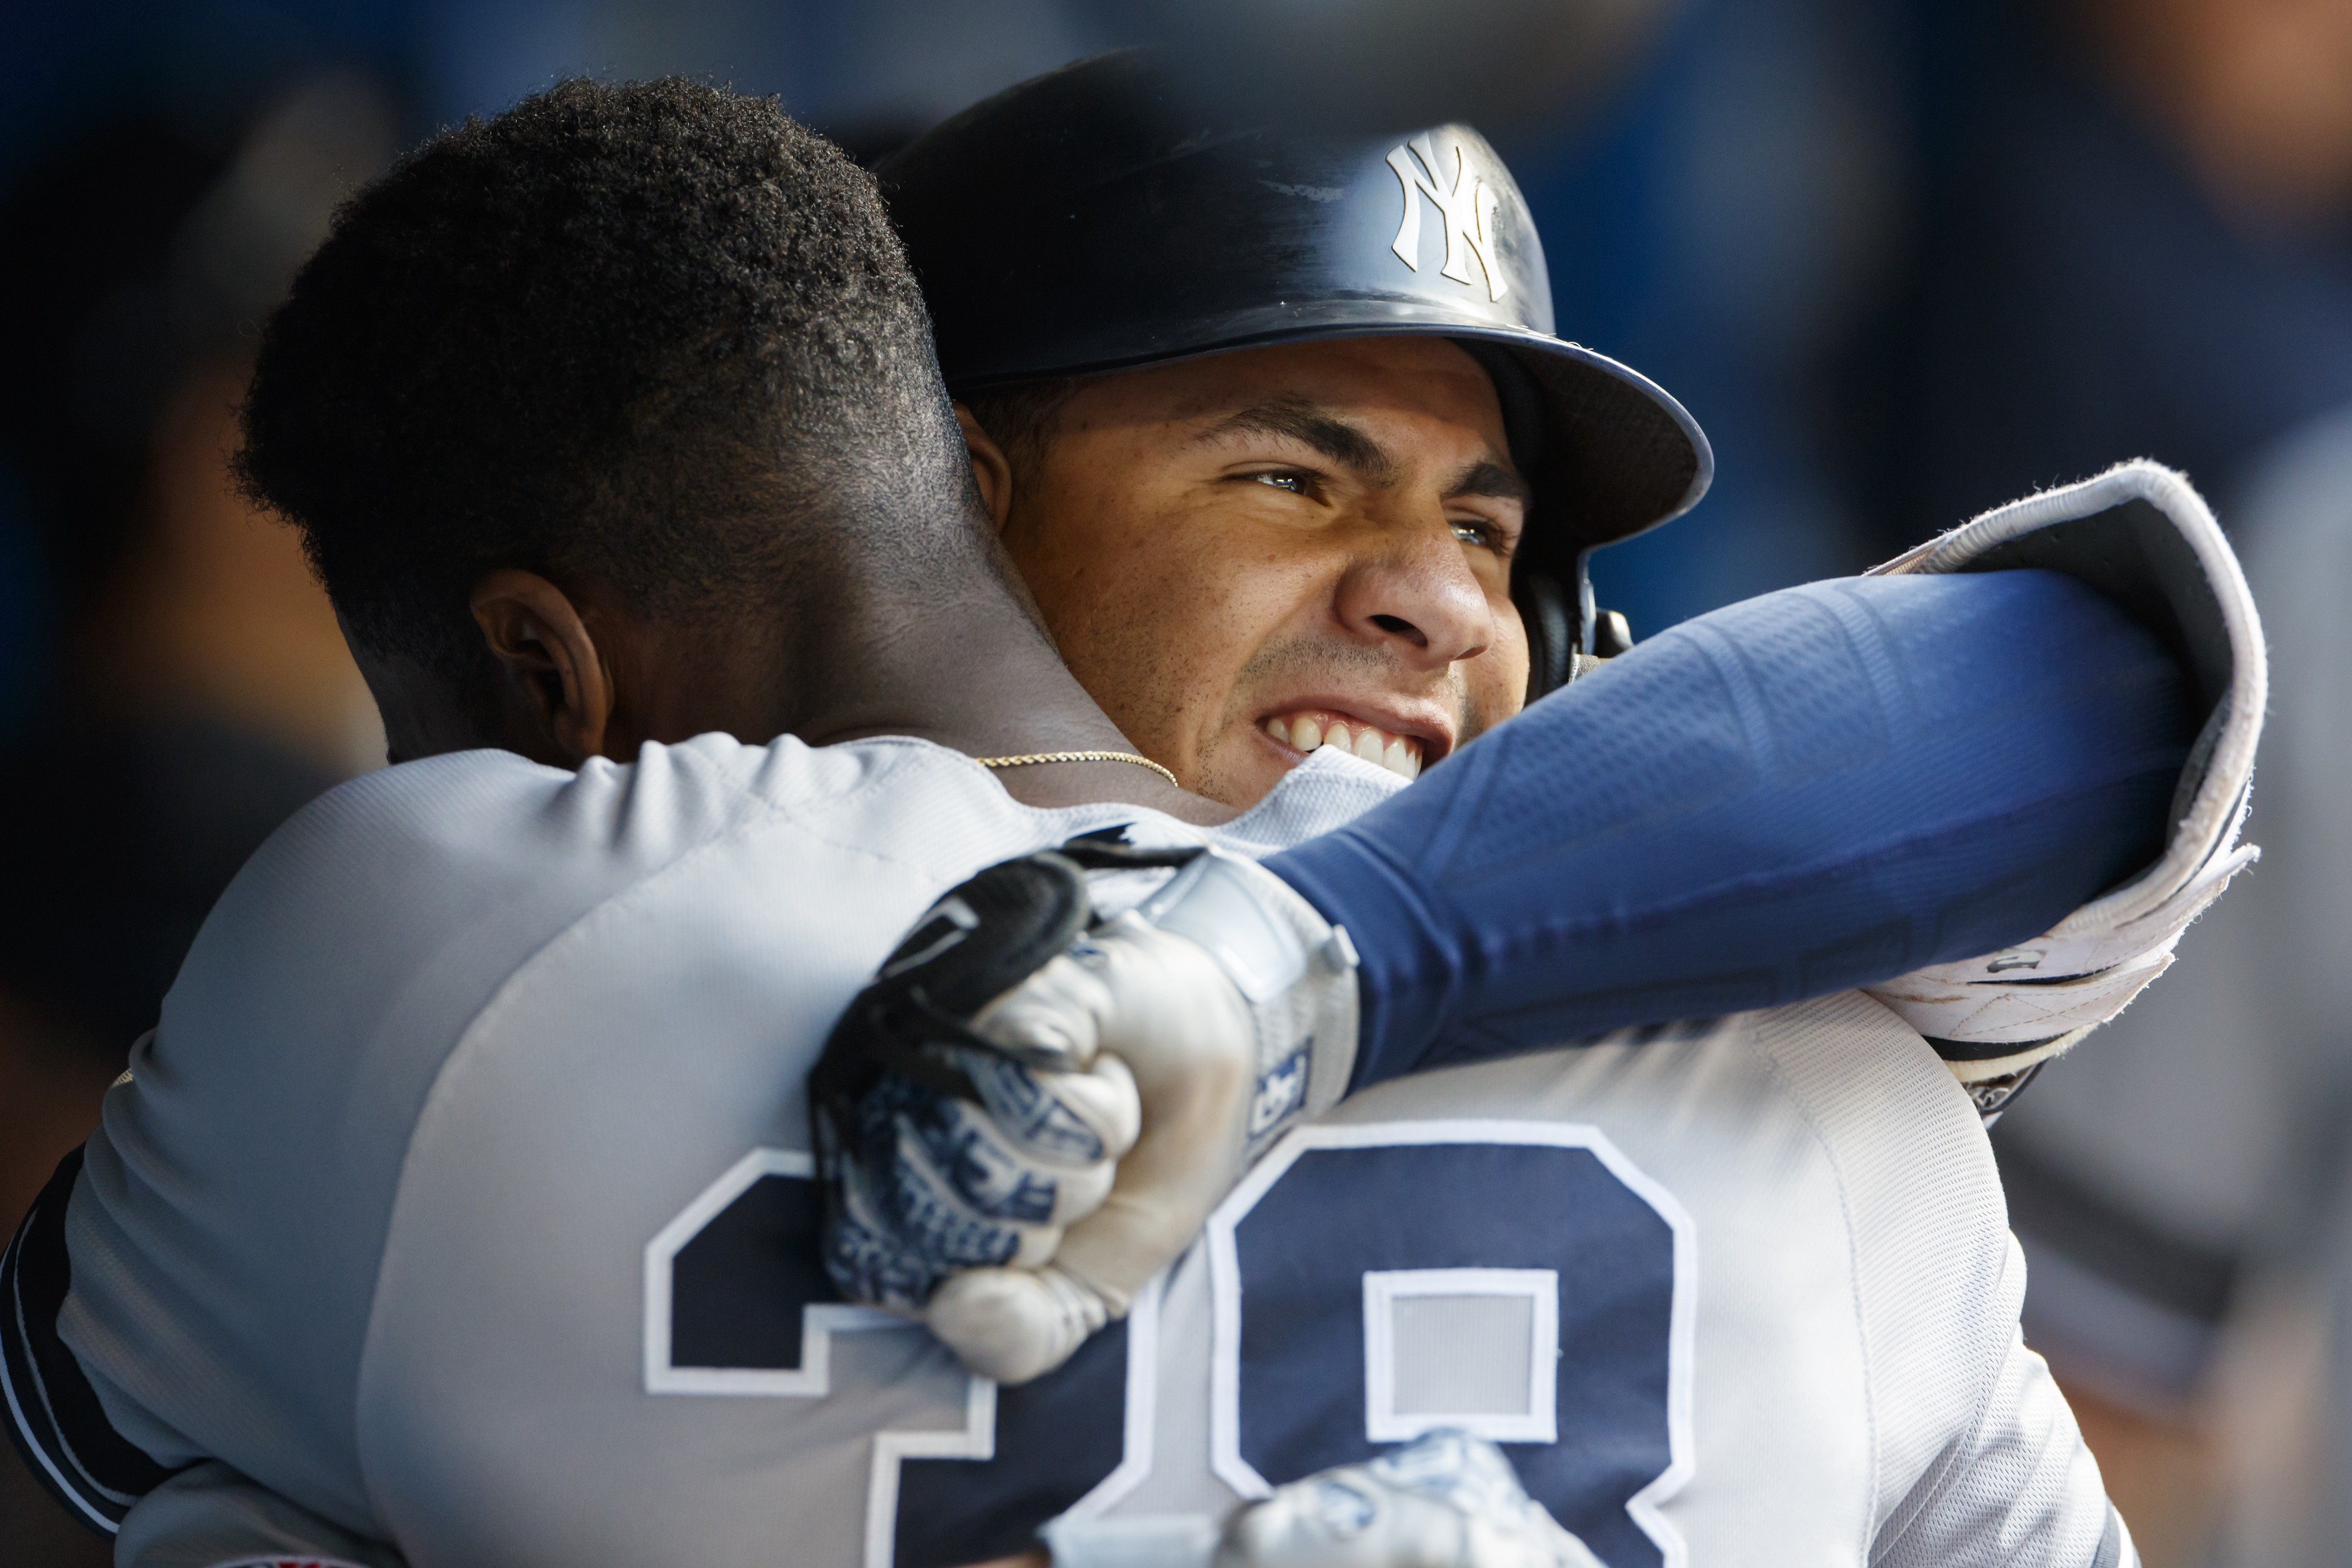 NY Yankees teammates Gleyber Torres and Cameron Maybin hug as they celebrate a two run home run against the Toronto Blue Jays